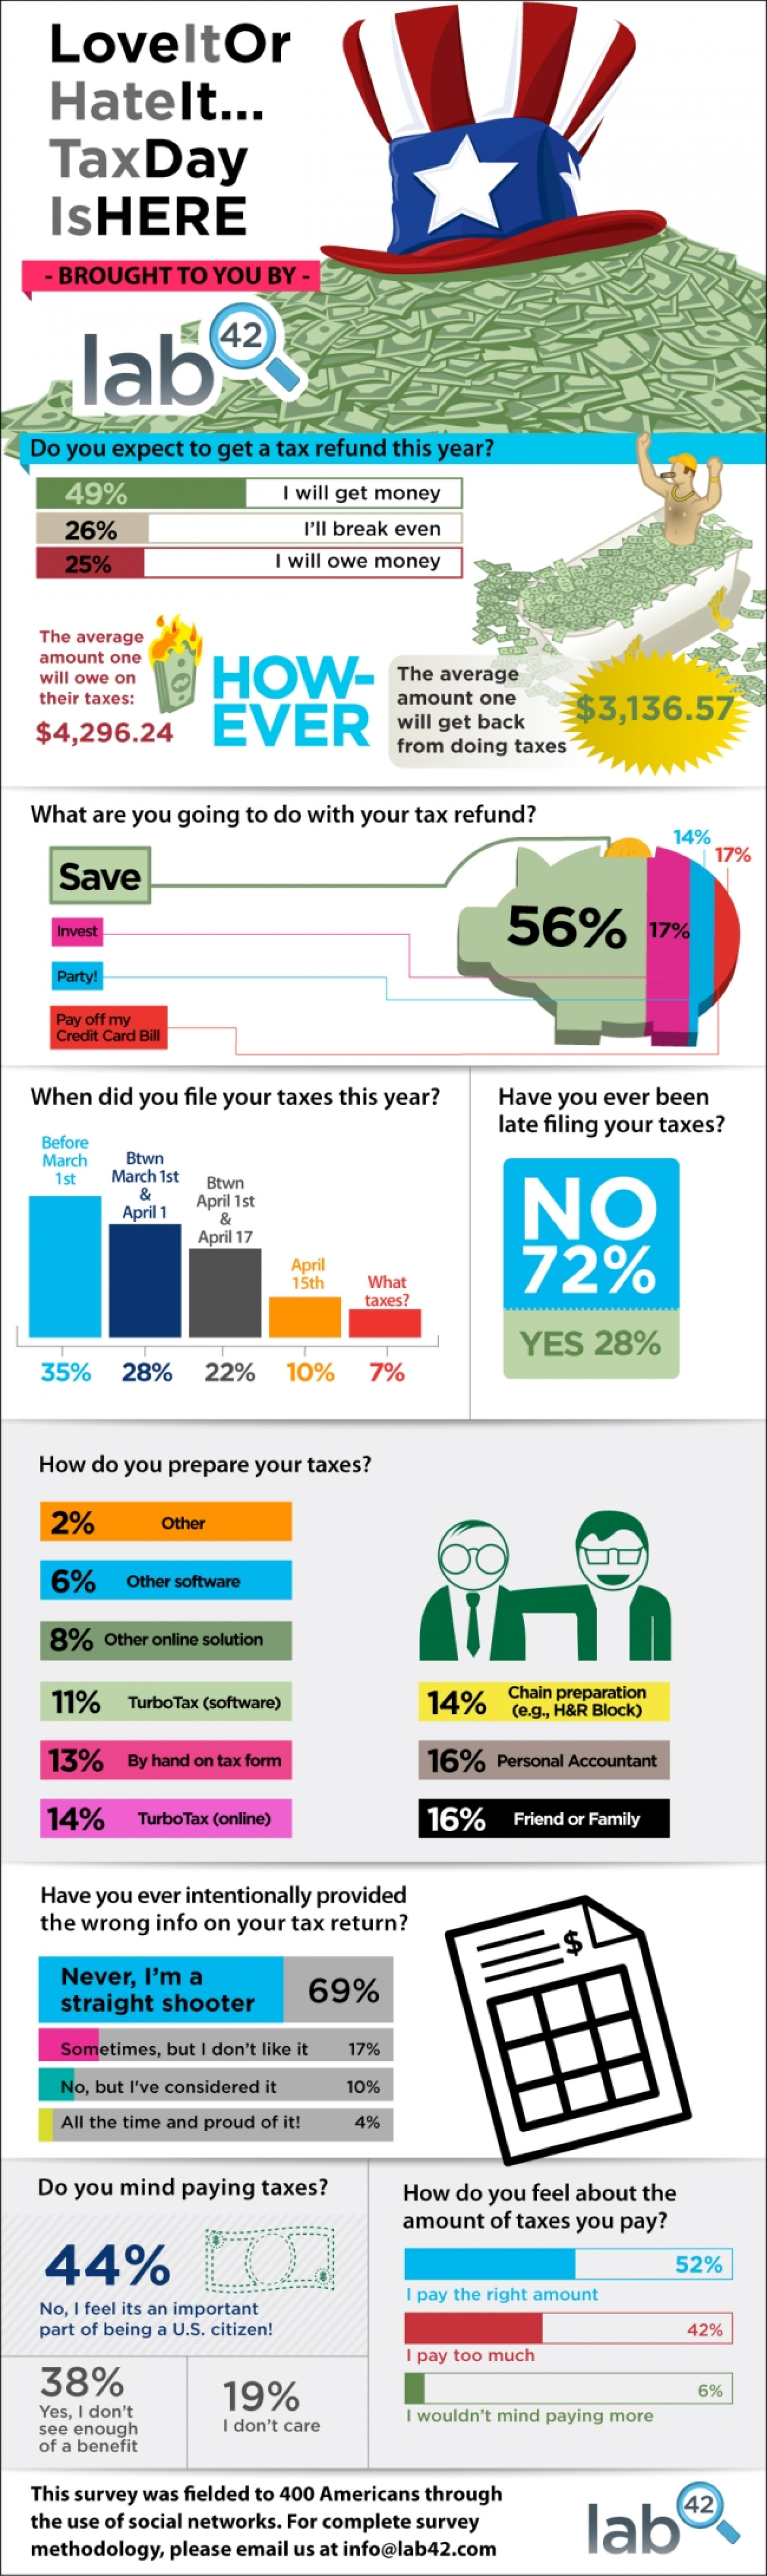 Love it or Hate It: Tax Day is Here Infographic